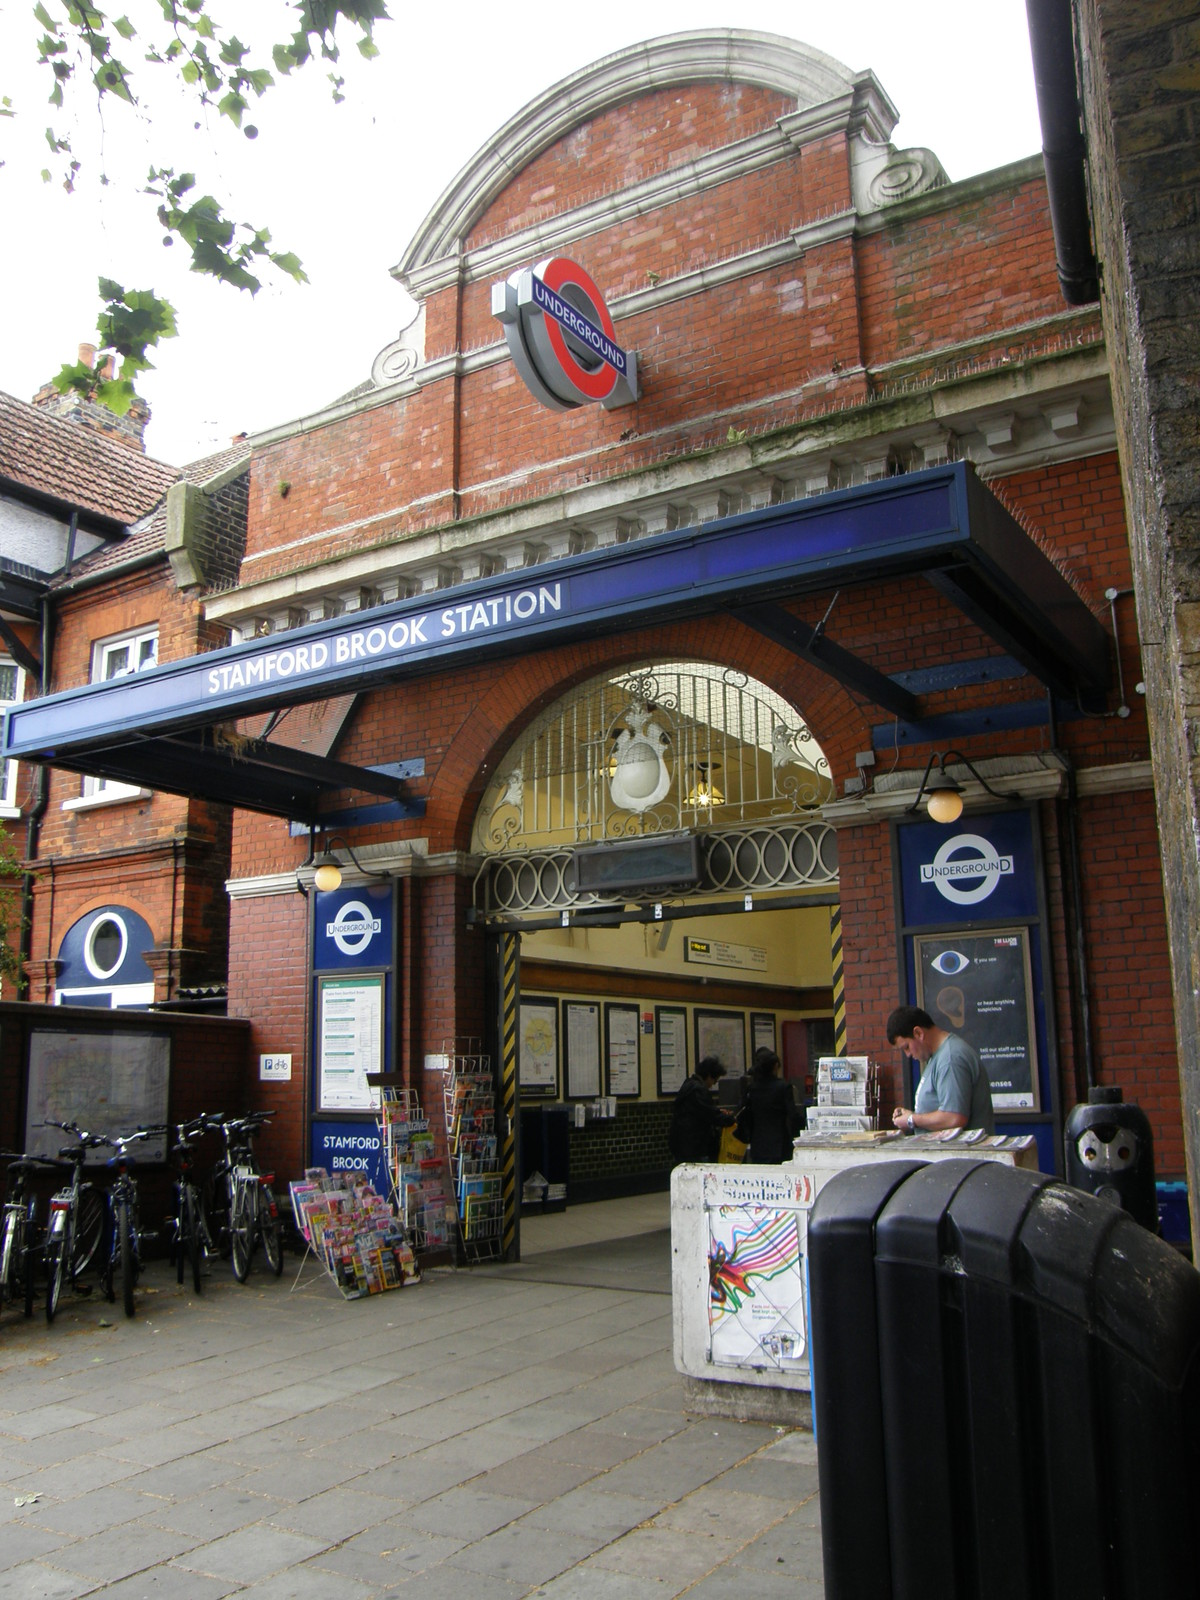 Stamford Brook station